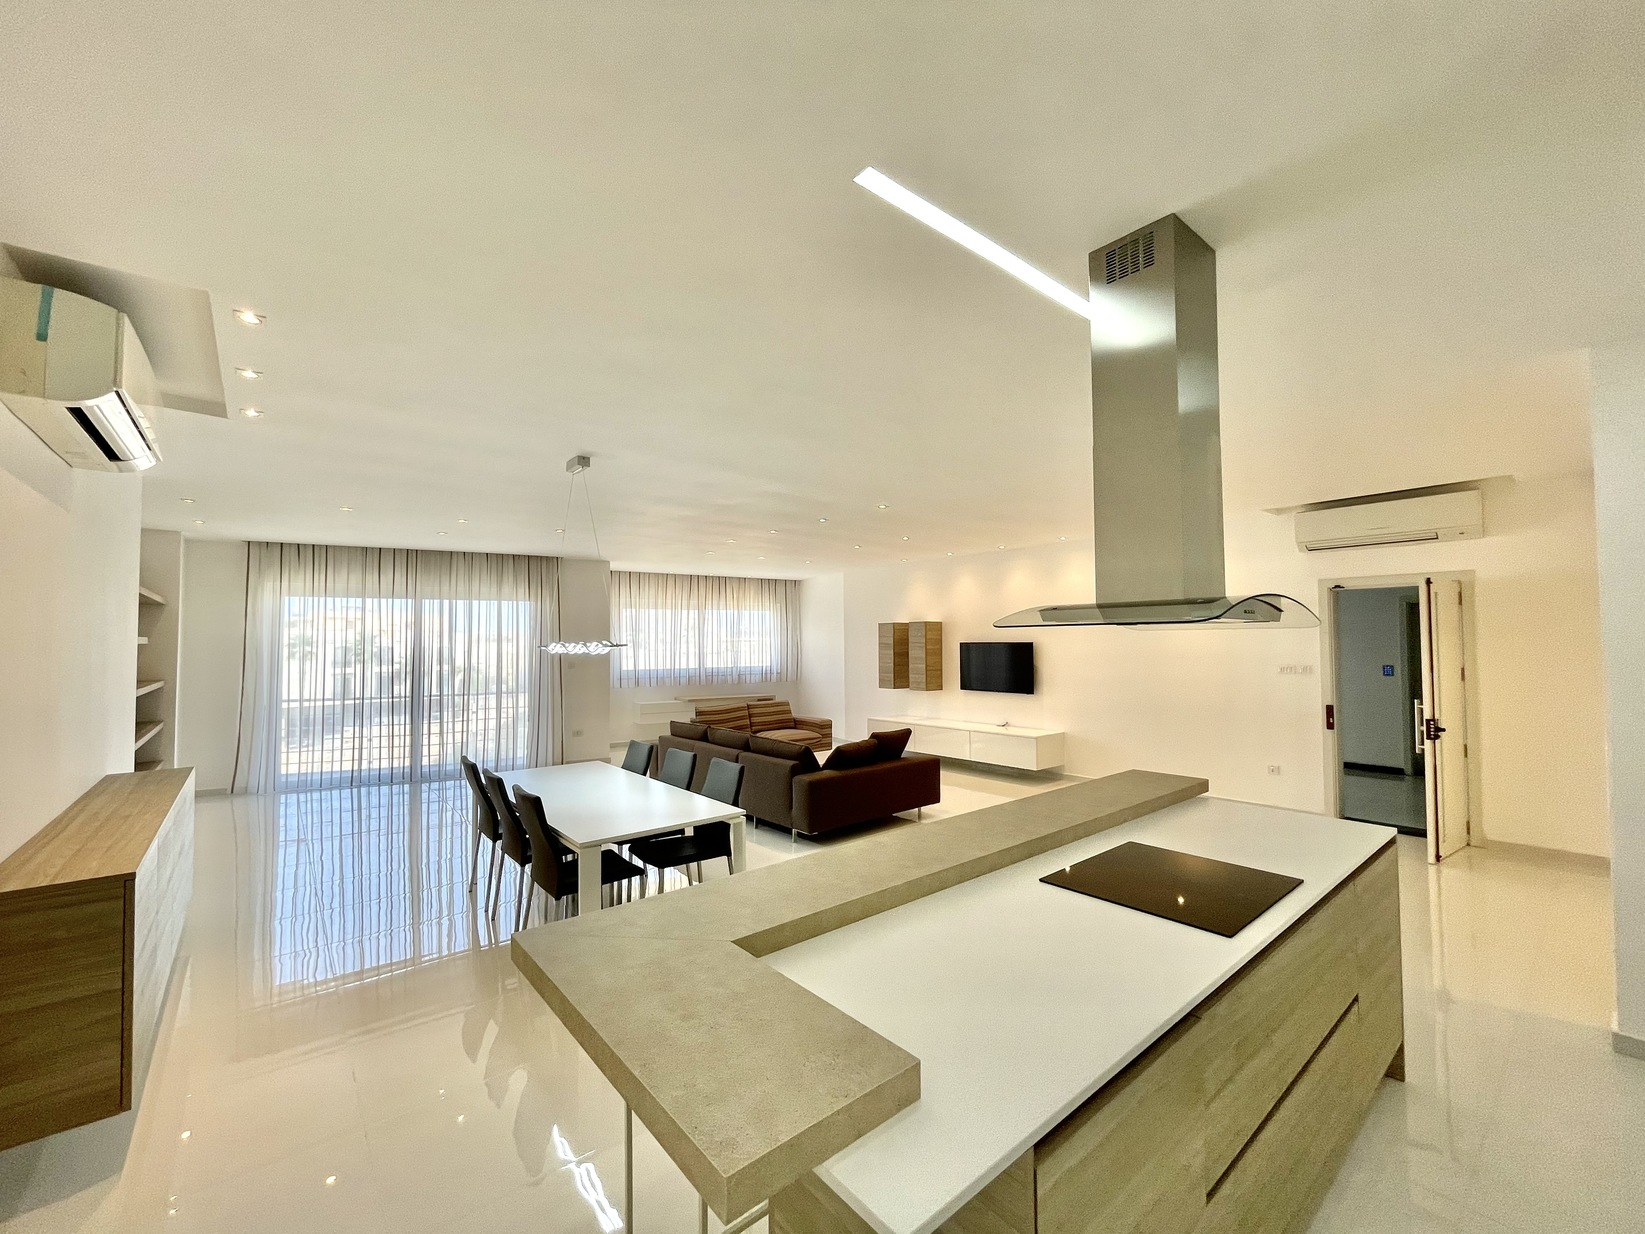 3 bed Apartment For Rent in Zejtun, Zejtun - thumb 4